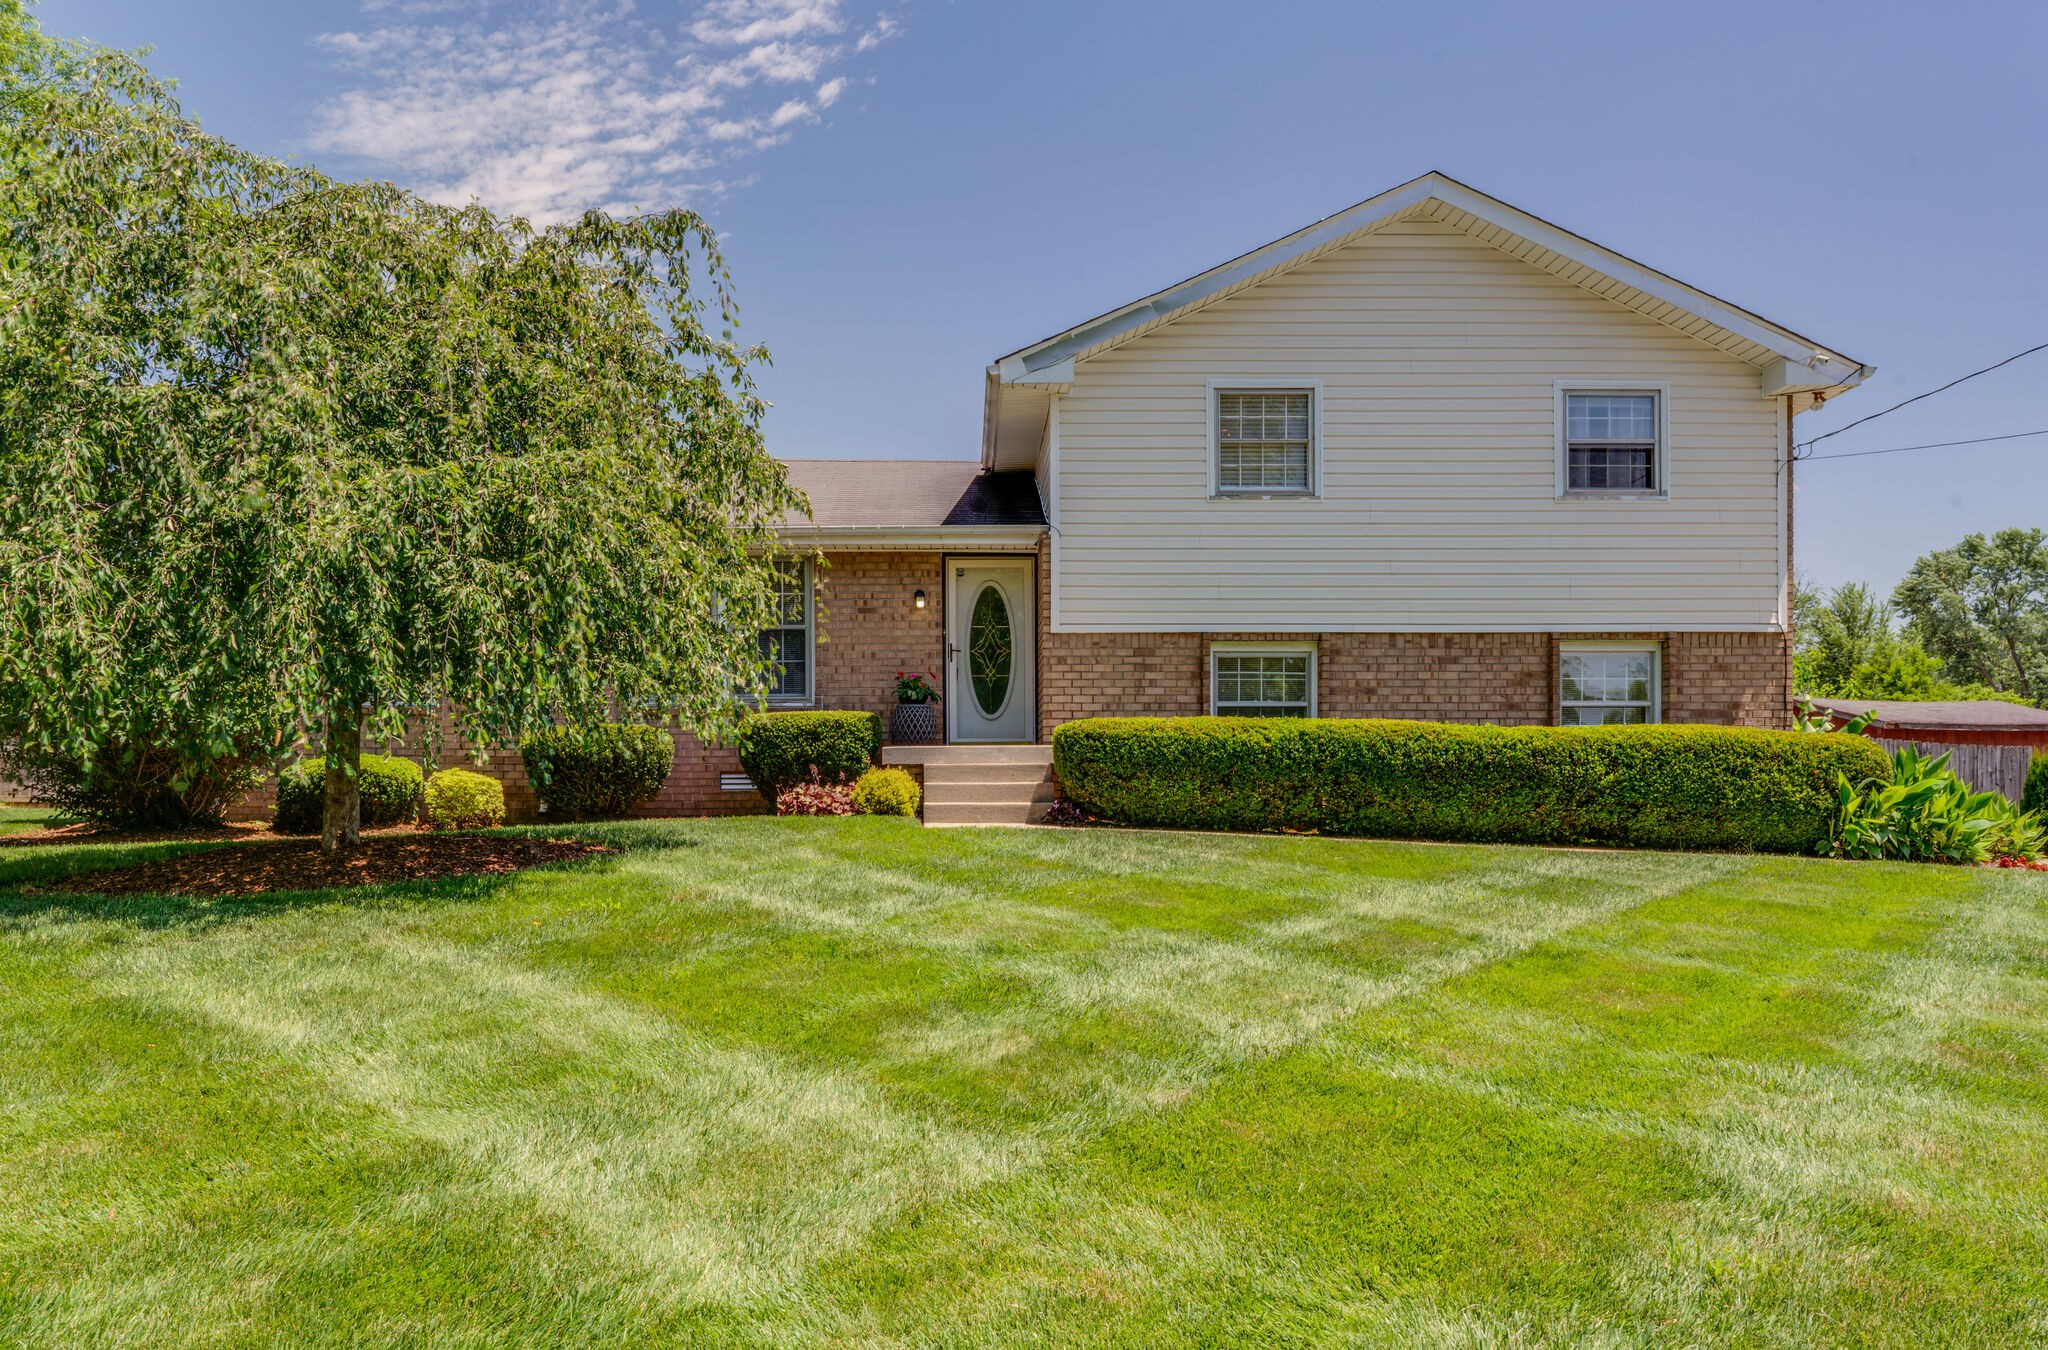 105 Peartree Dr